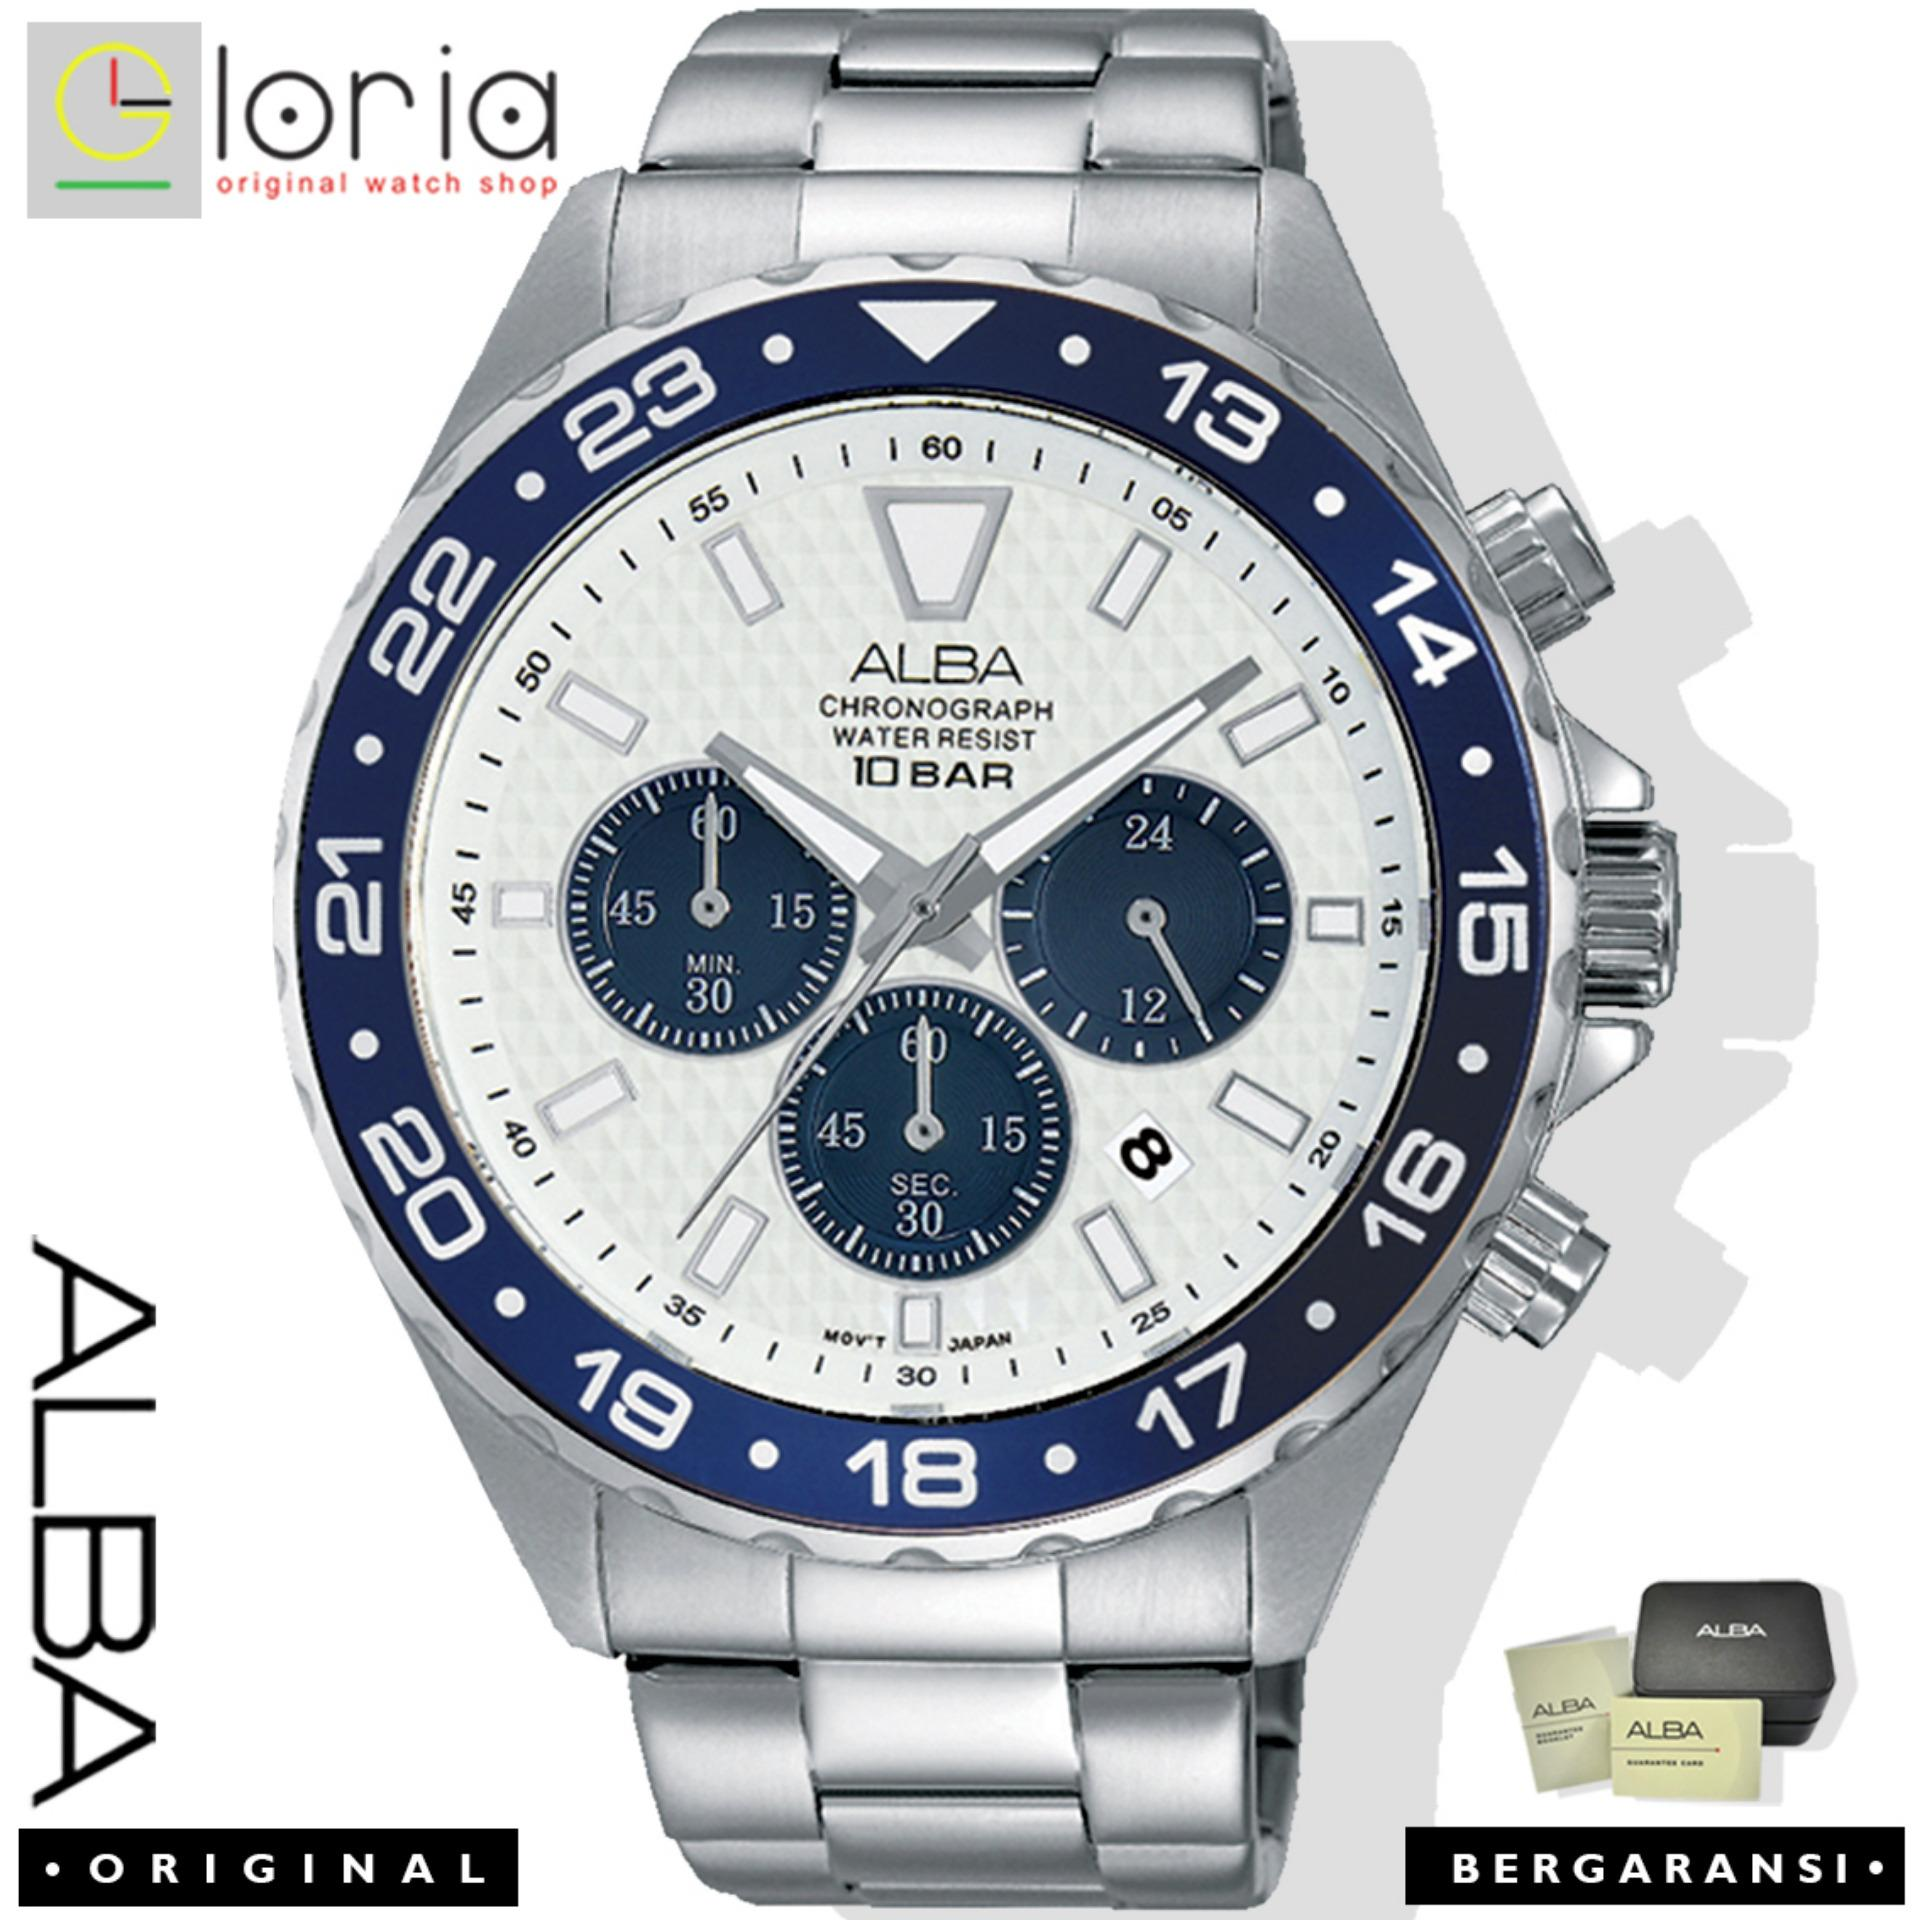 Alba AT39 Chronograph Jam Tangan Pria Tali Kulit Quartz Movement / Stainless Steel jam tangan alba